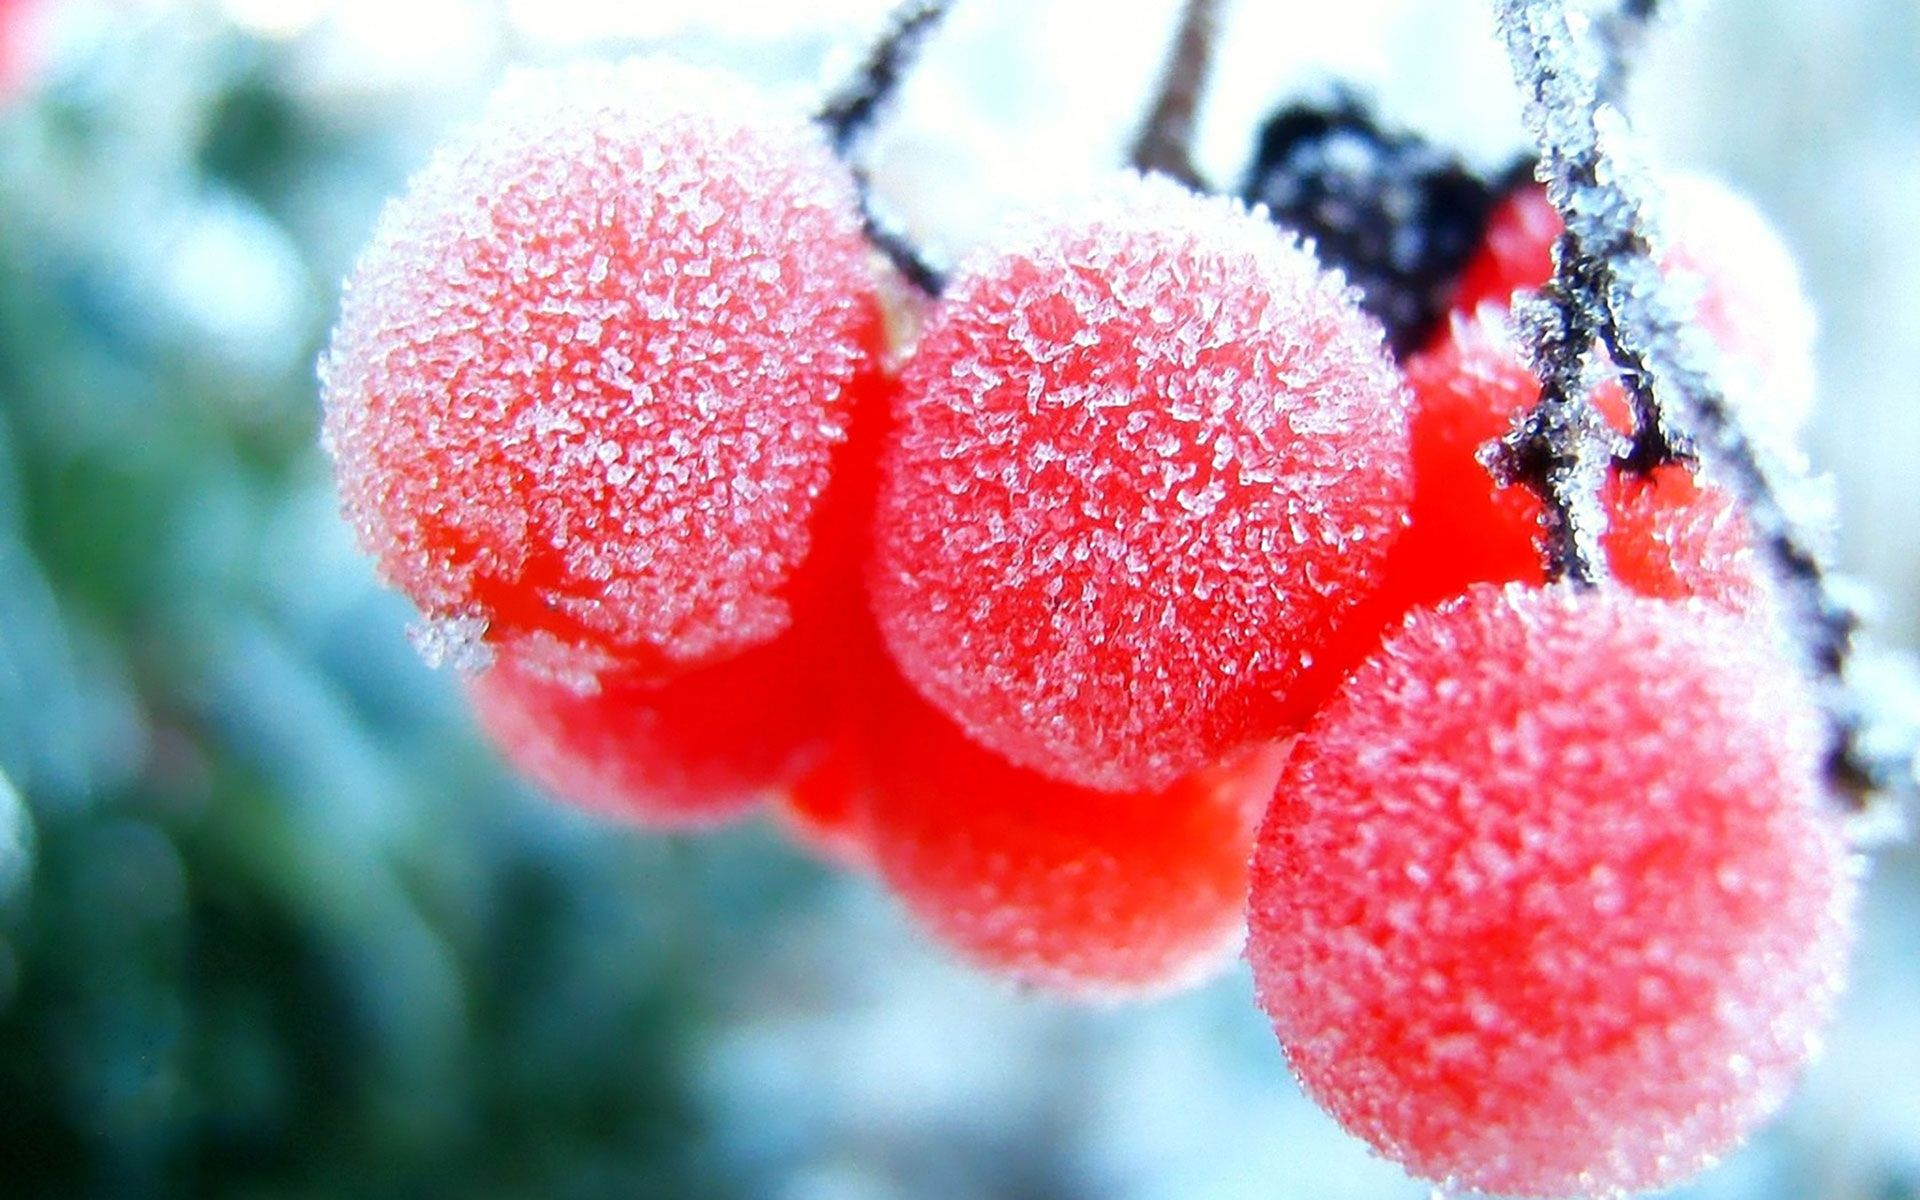 Download Smile On A Frosty Window Wallpaper - Frozen cherry wallpapers